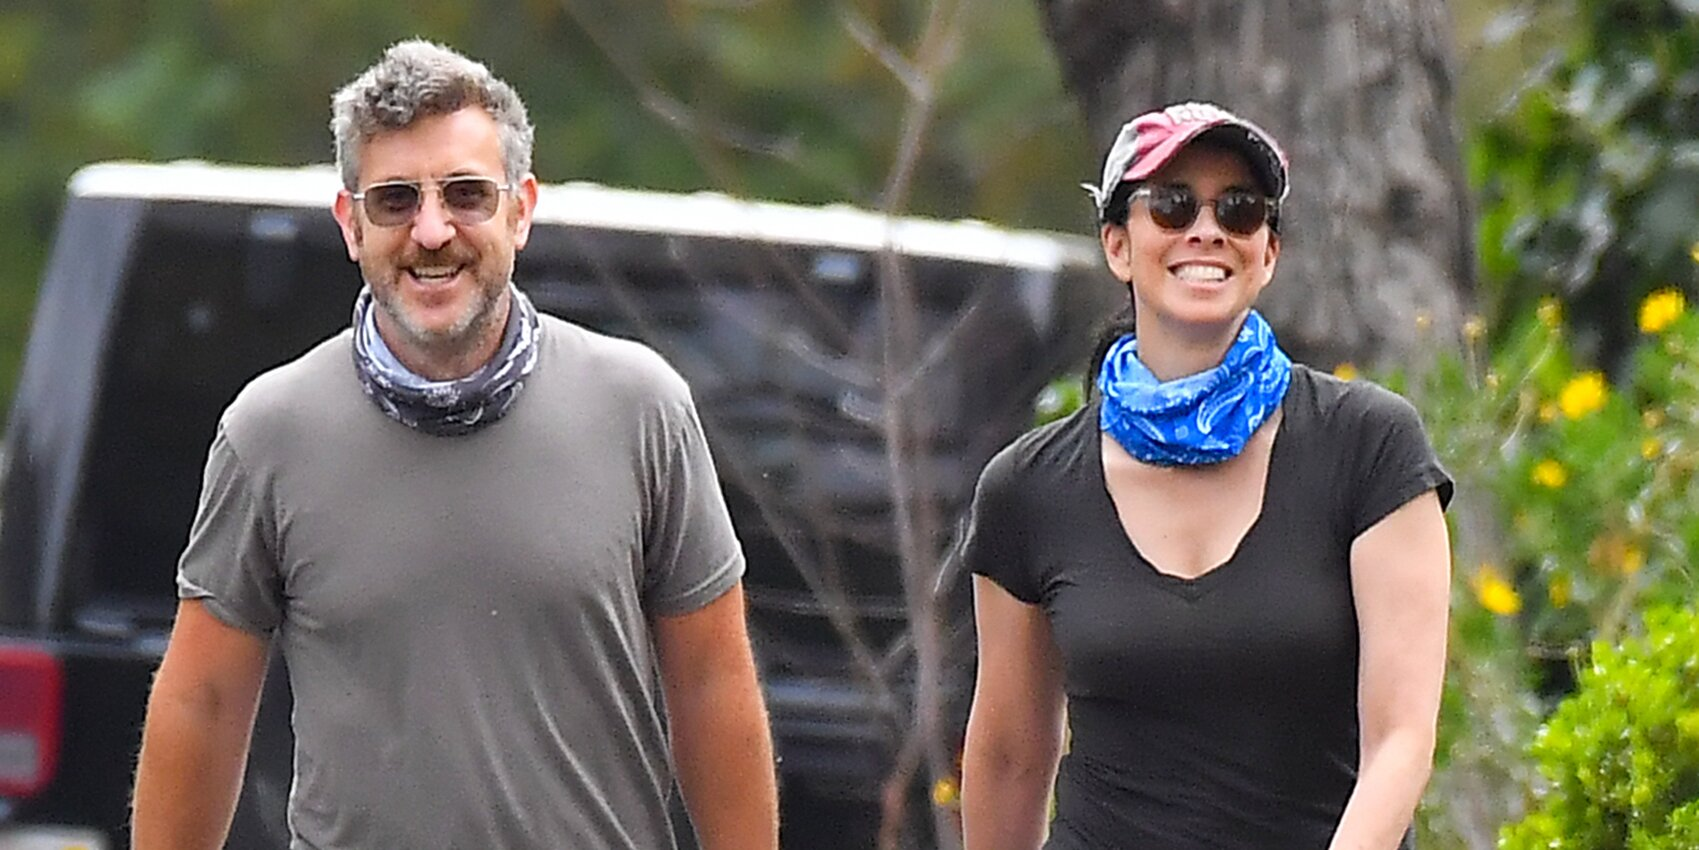 Sarah Silverman and Boyfriend Rory Albanese are Spotted in L.A., Plus Pierce Brosnan, Megan Fox and More